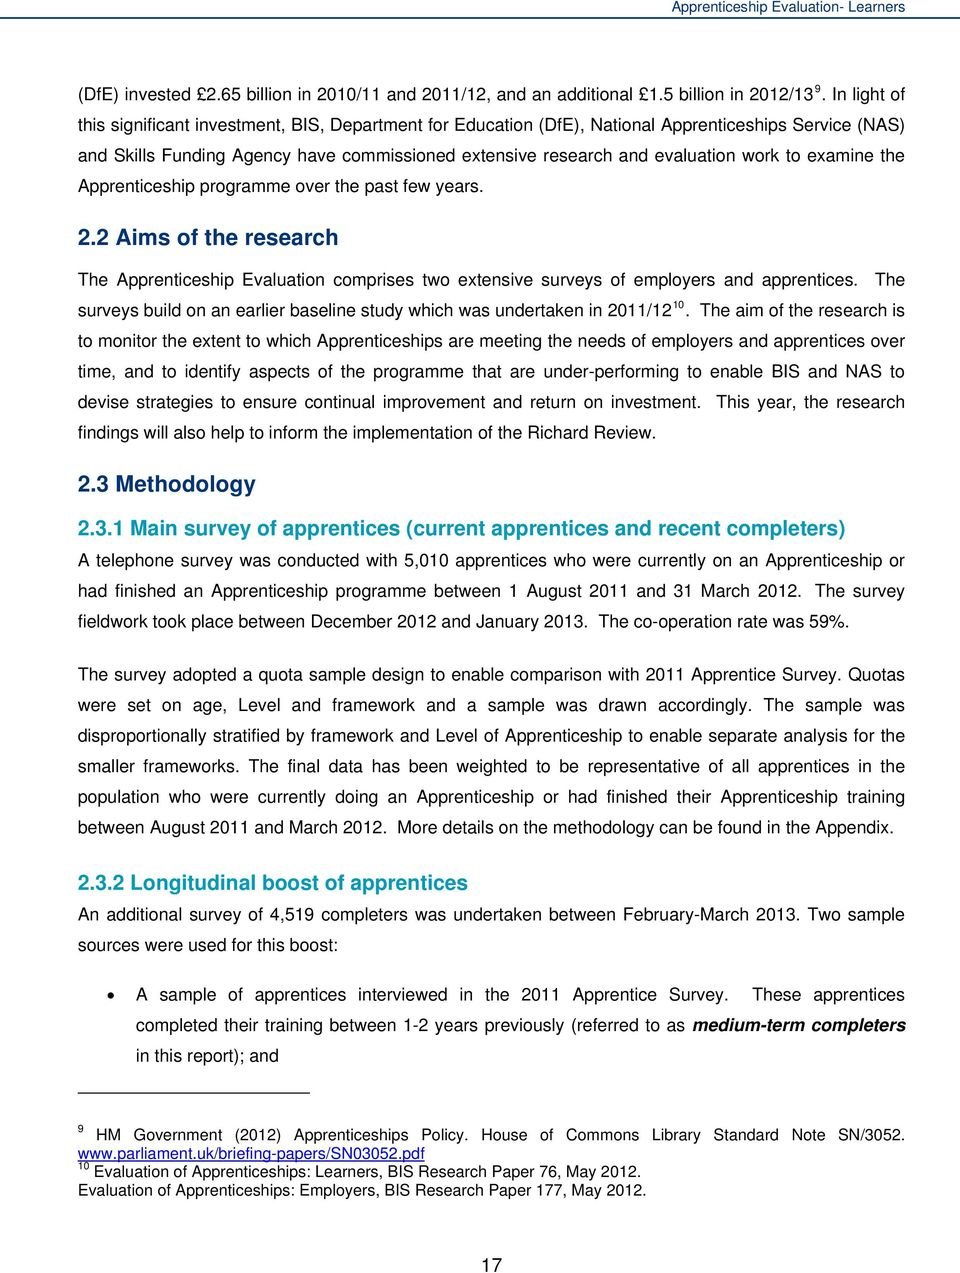 to examine the Apprenticeship programme over the past few years. 2.2 Aims of the research The Apprenticeship Evaluation comprises two extensive surveys of employers and apprentices.